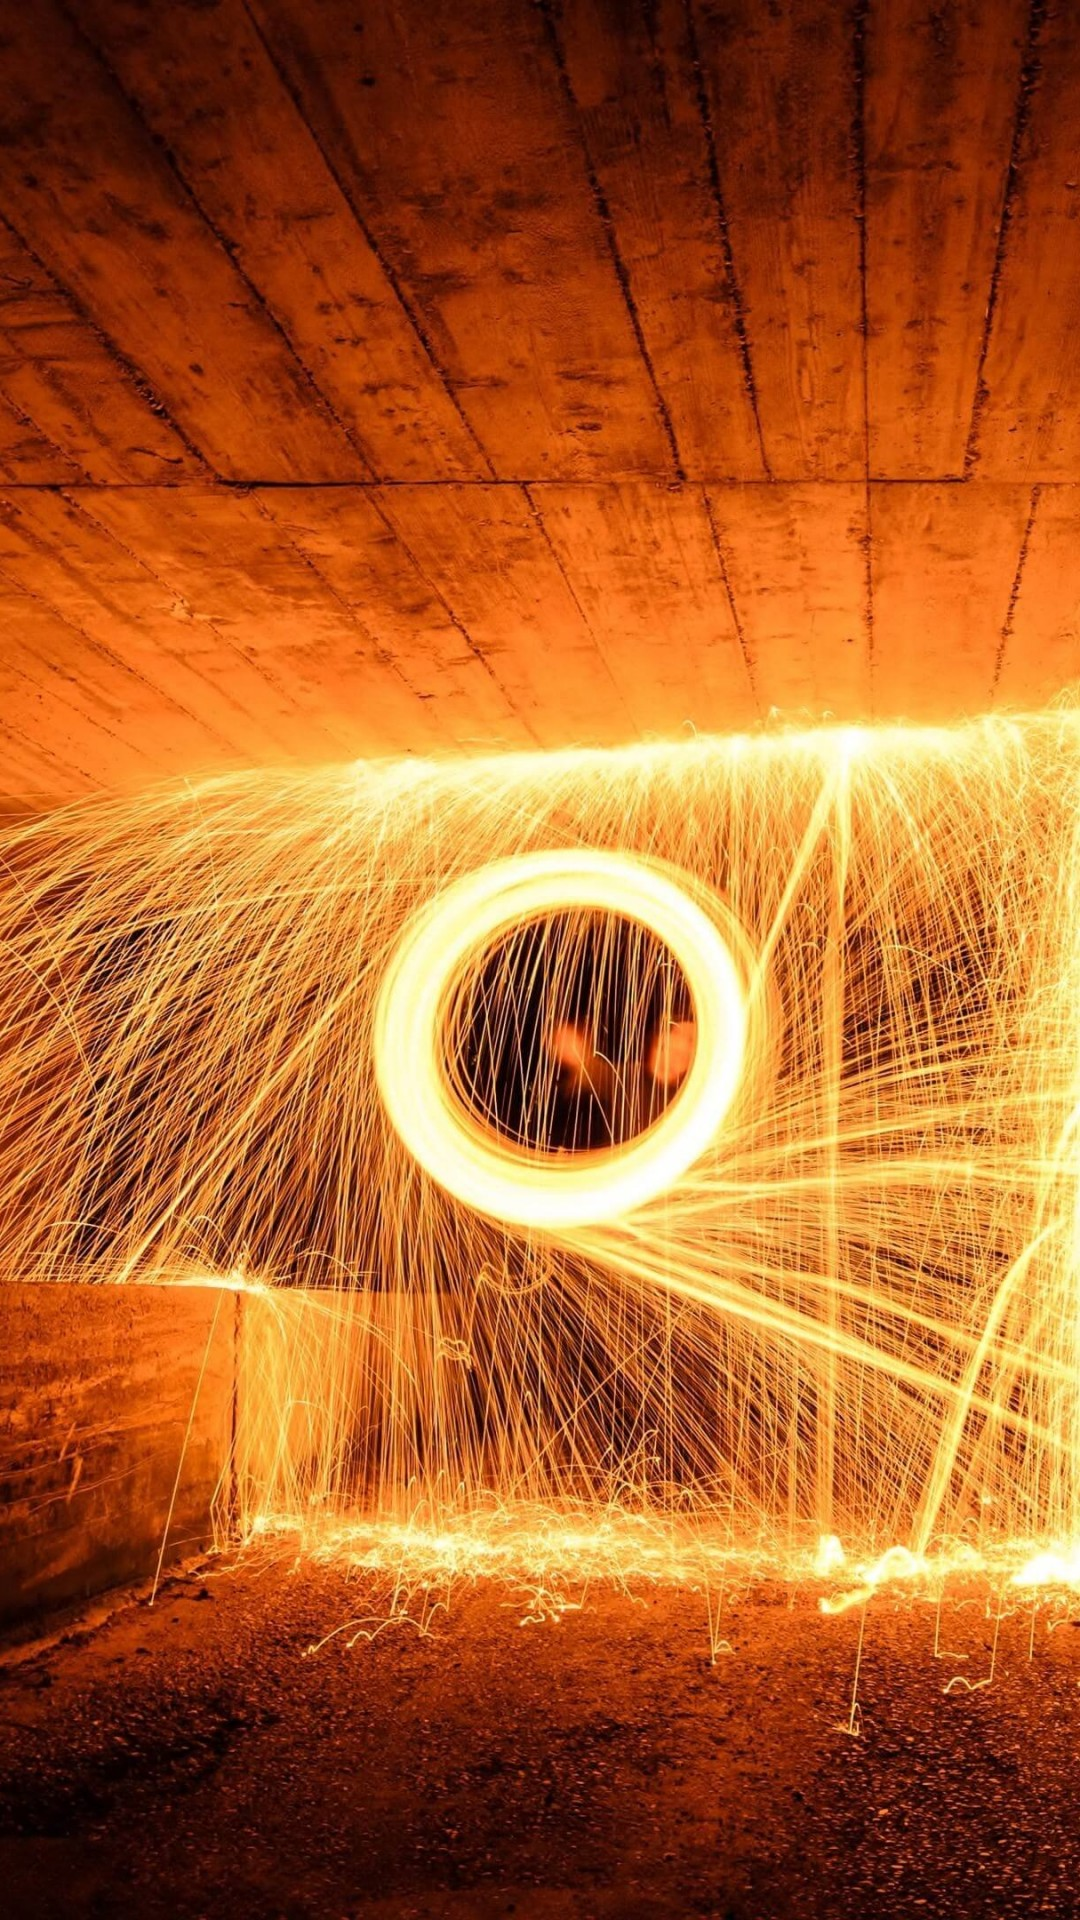 Wire Wool Long Exposure Wallpaper for SONY Xperia Z1